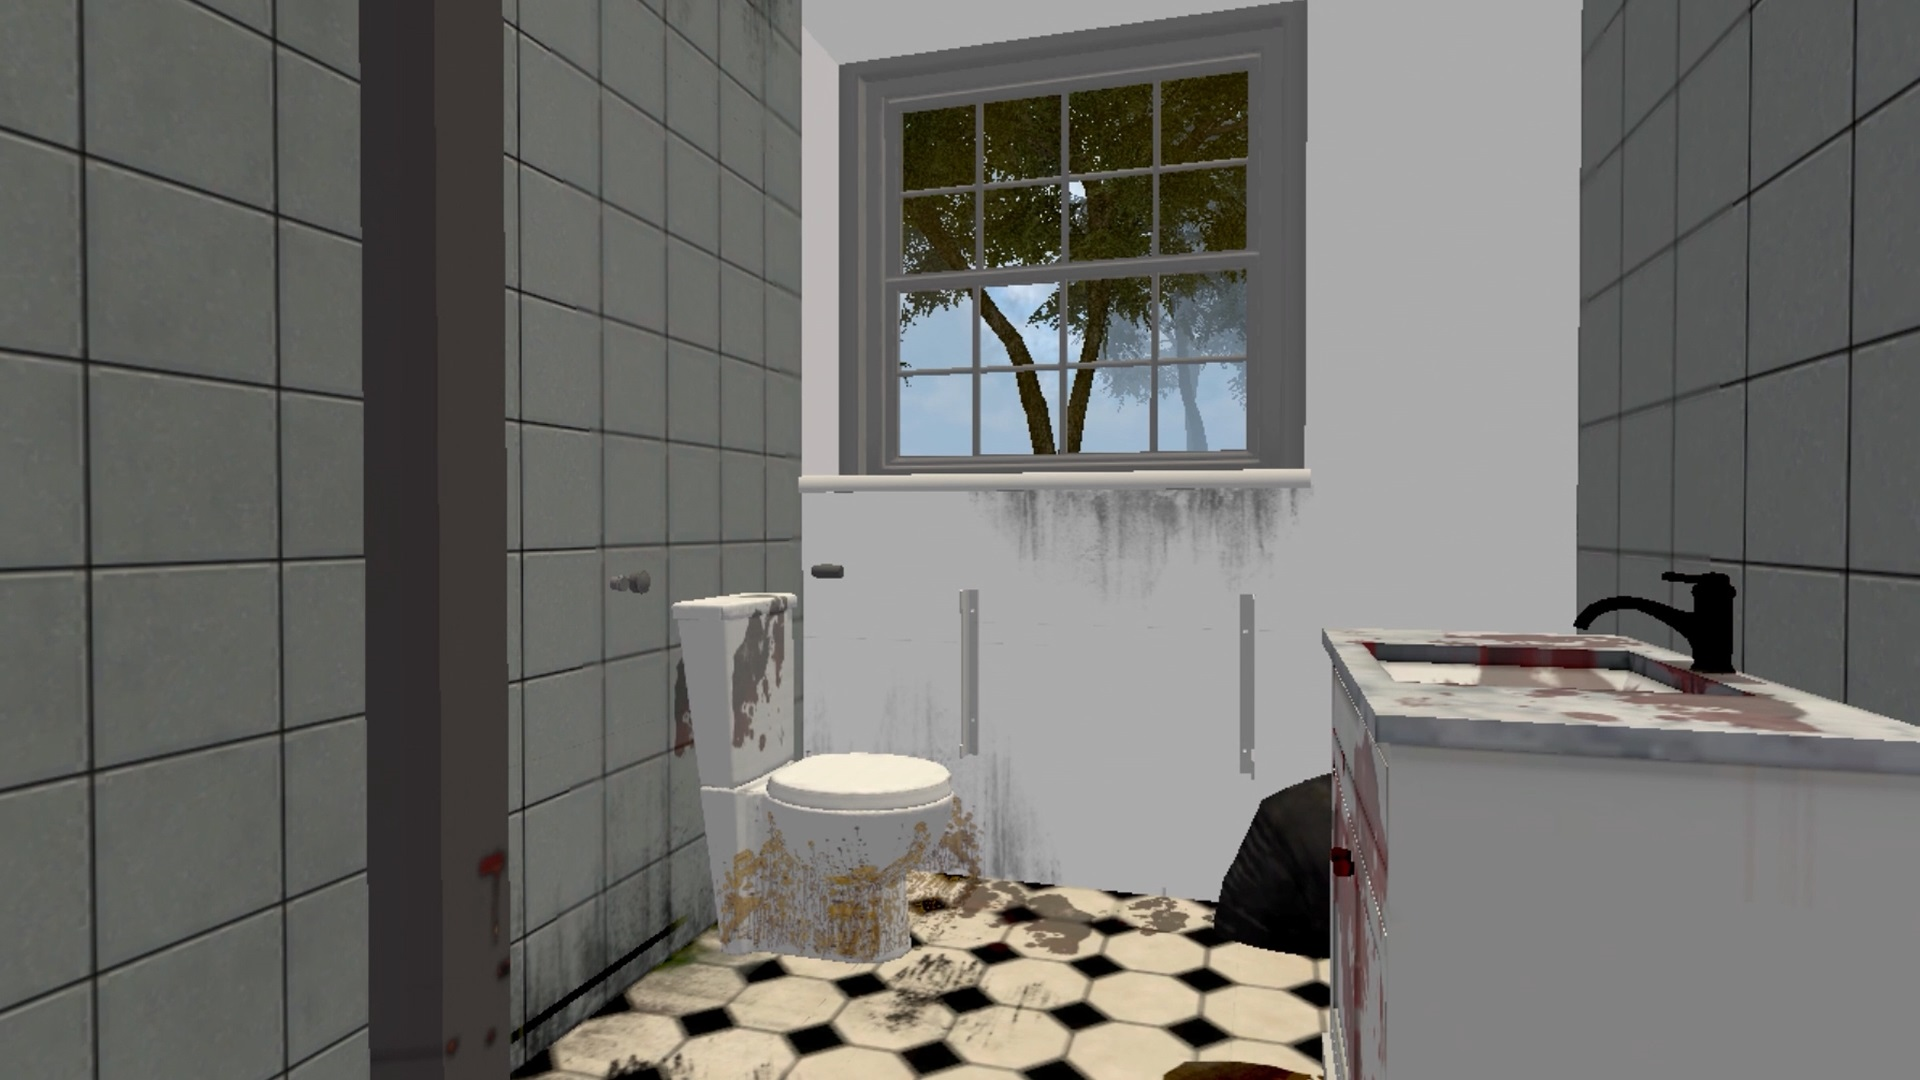 House Flipper Switch contest win dirty toilet